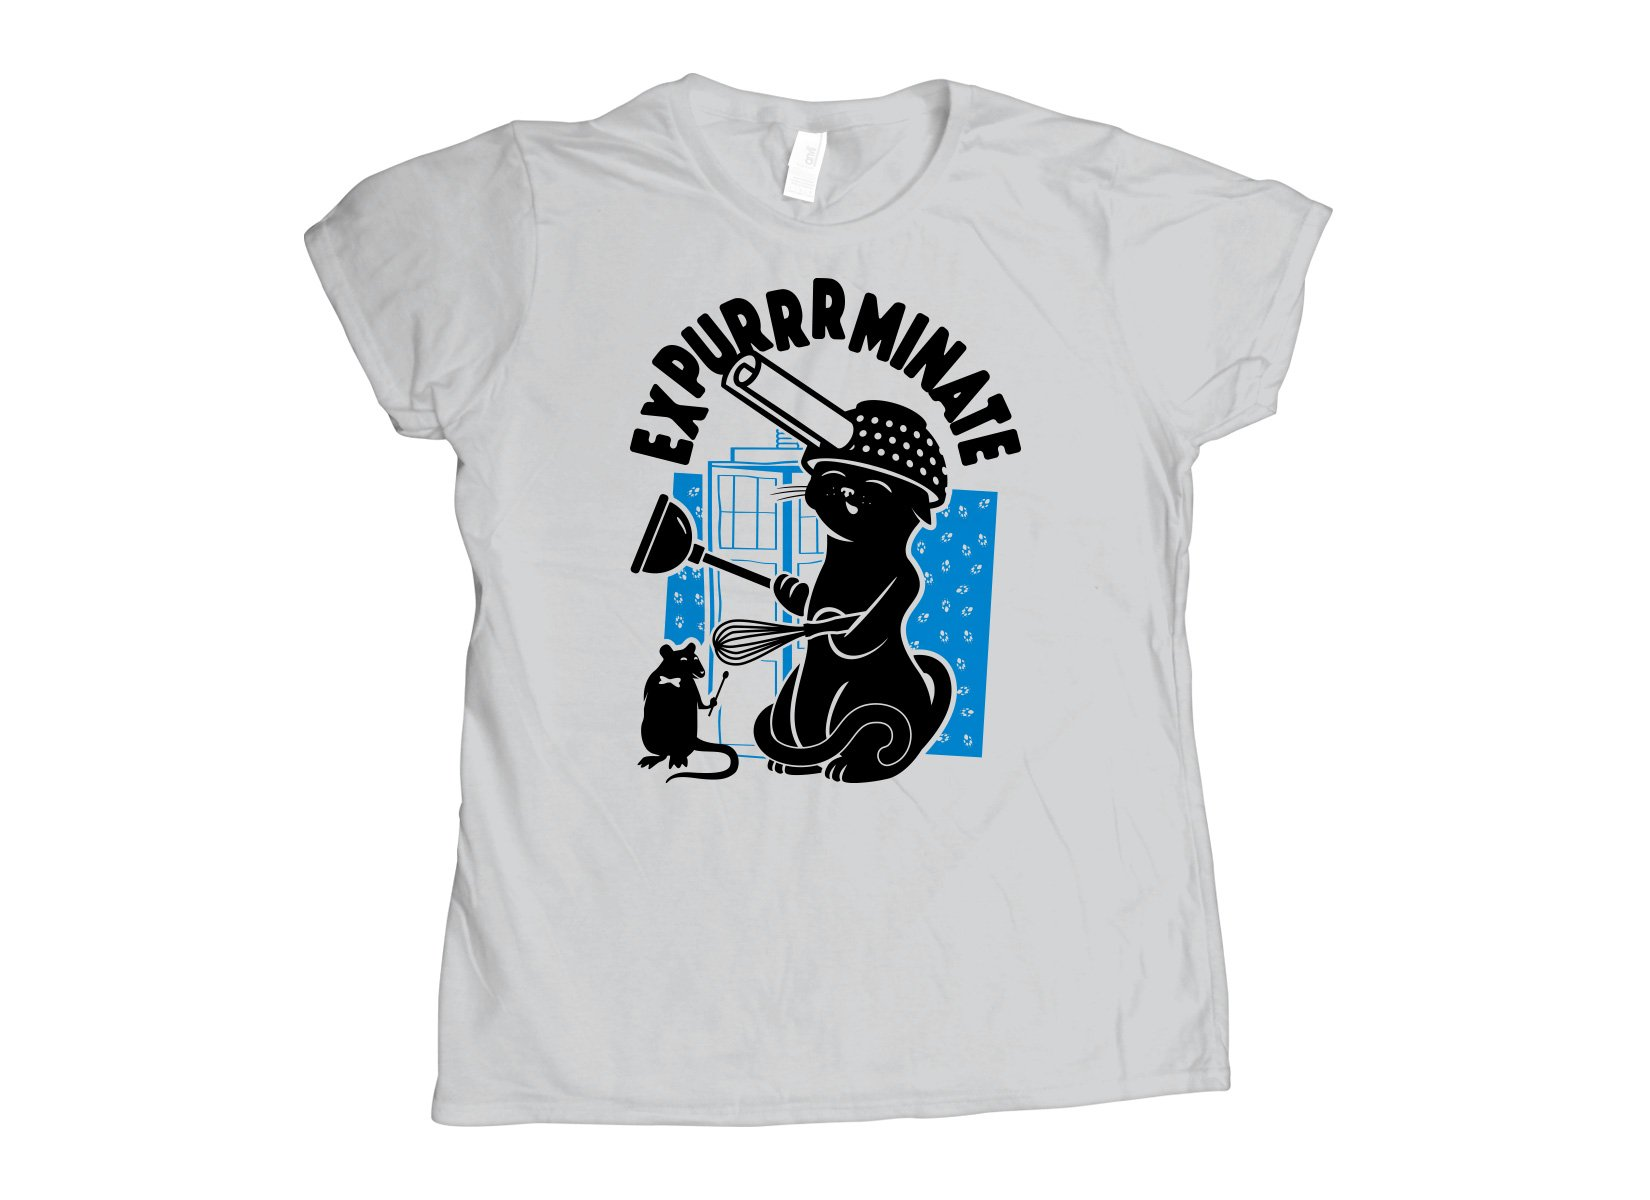 Expurrrminate on Womens T-Shirt